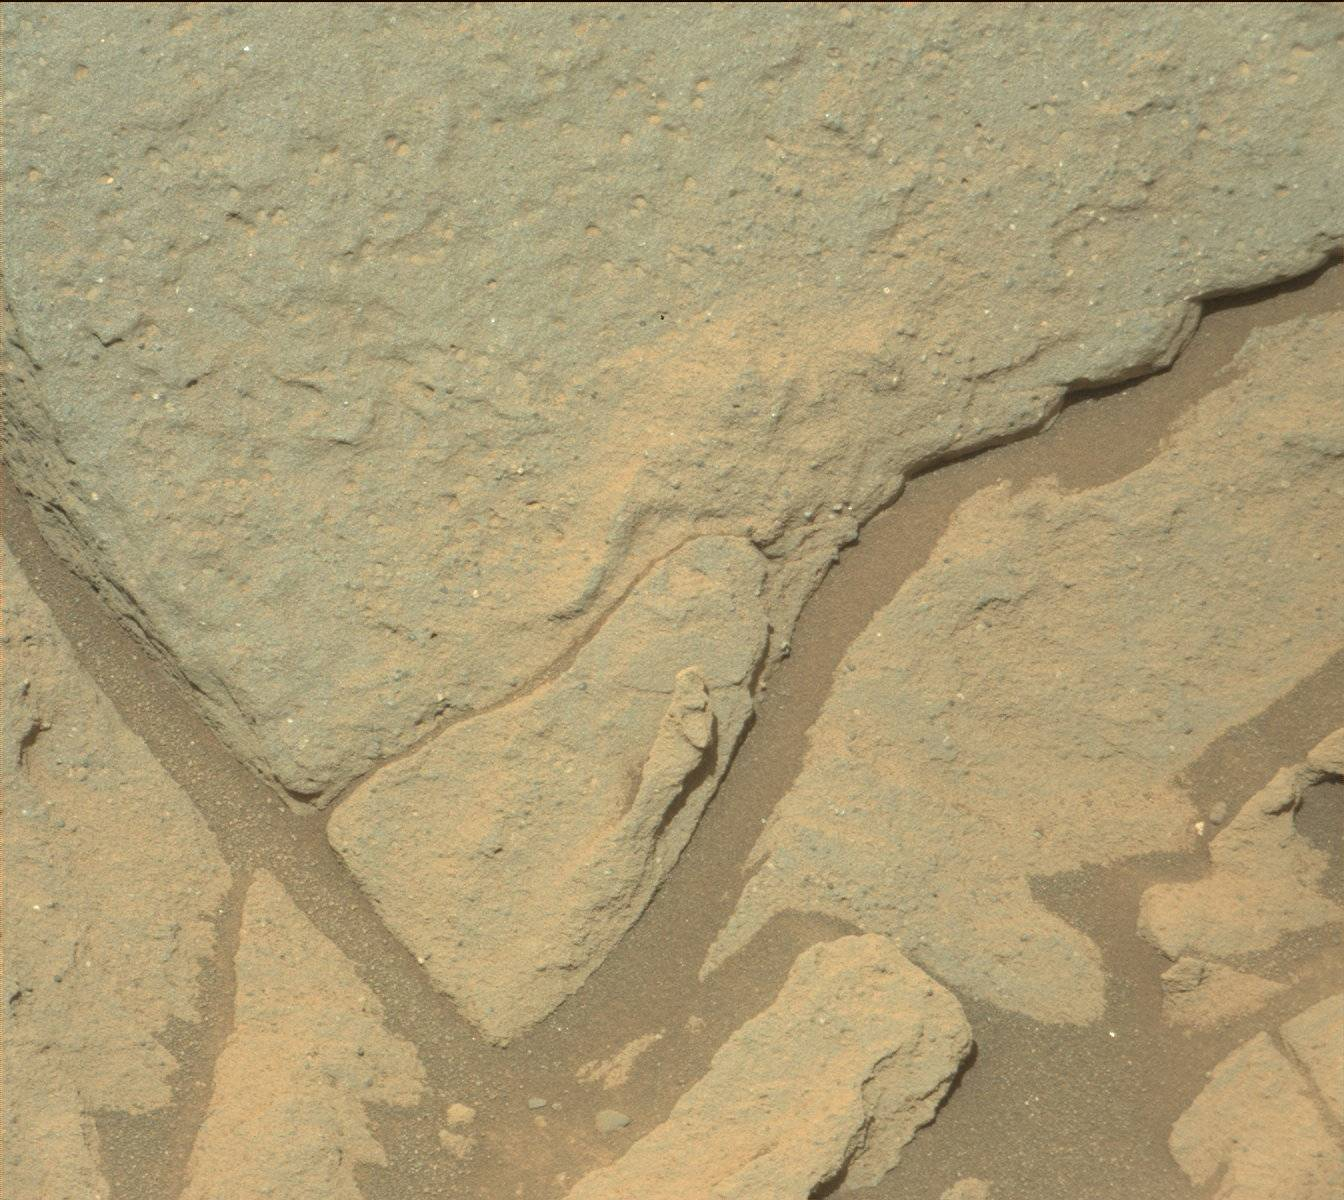 Nasa's Mars rover Curiosity acquired this image using its Mast Camera (Mastcam) on Sol 1044